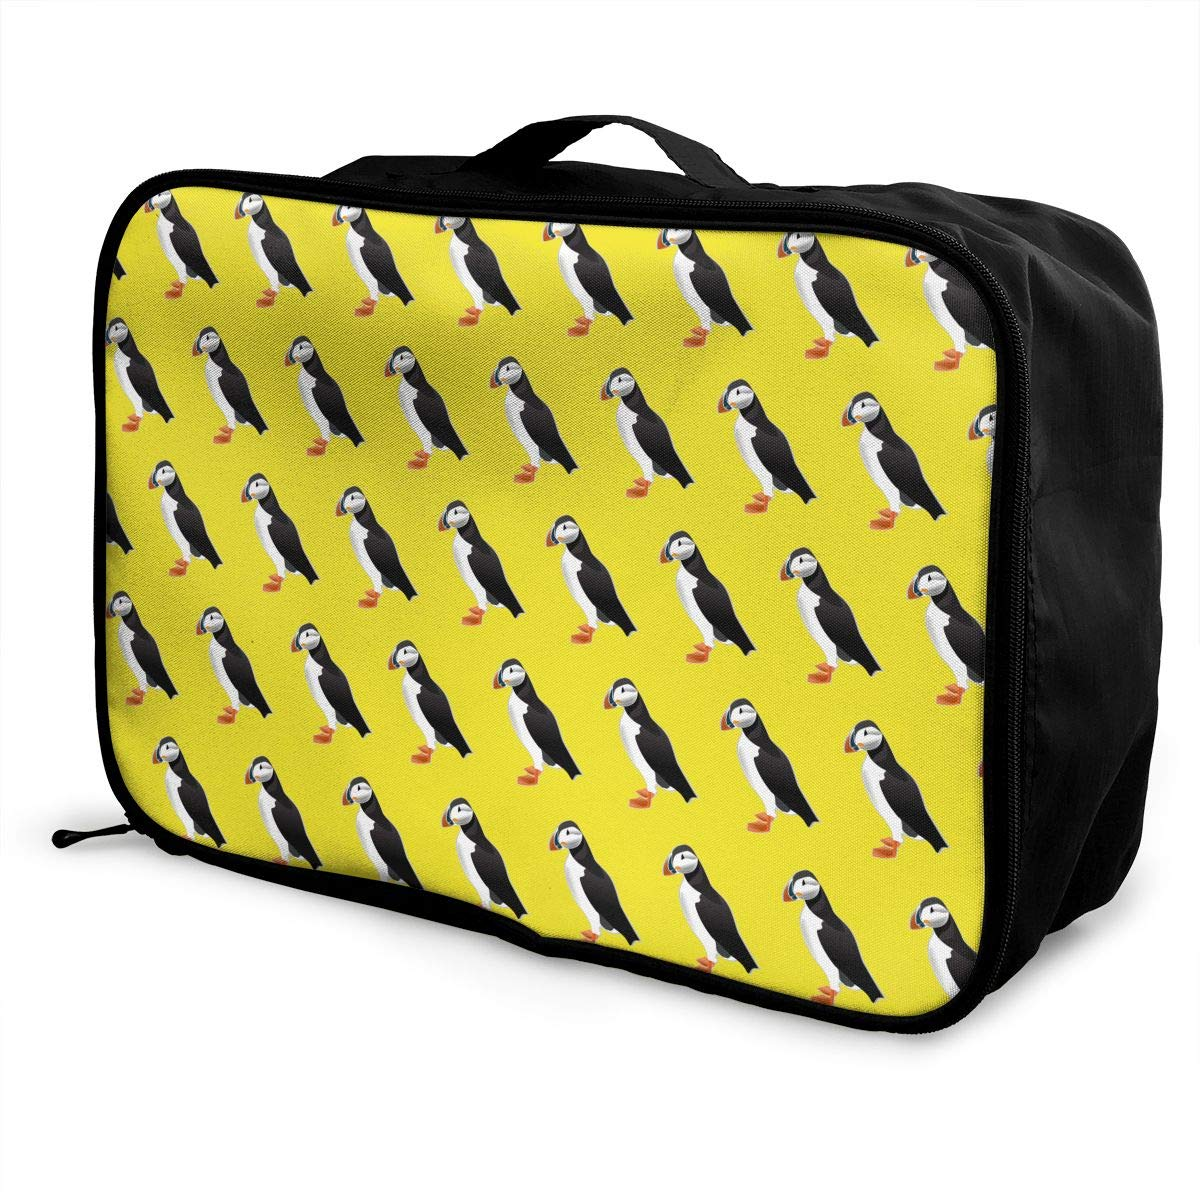 YueLJB Puffin Birds Pattern Lightweight Large Capacity Portable Luggage Bag Travel Duffel Bag Storage Carry Luggage Duffle Tote Bag